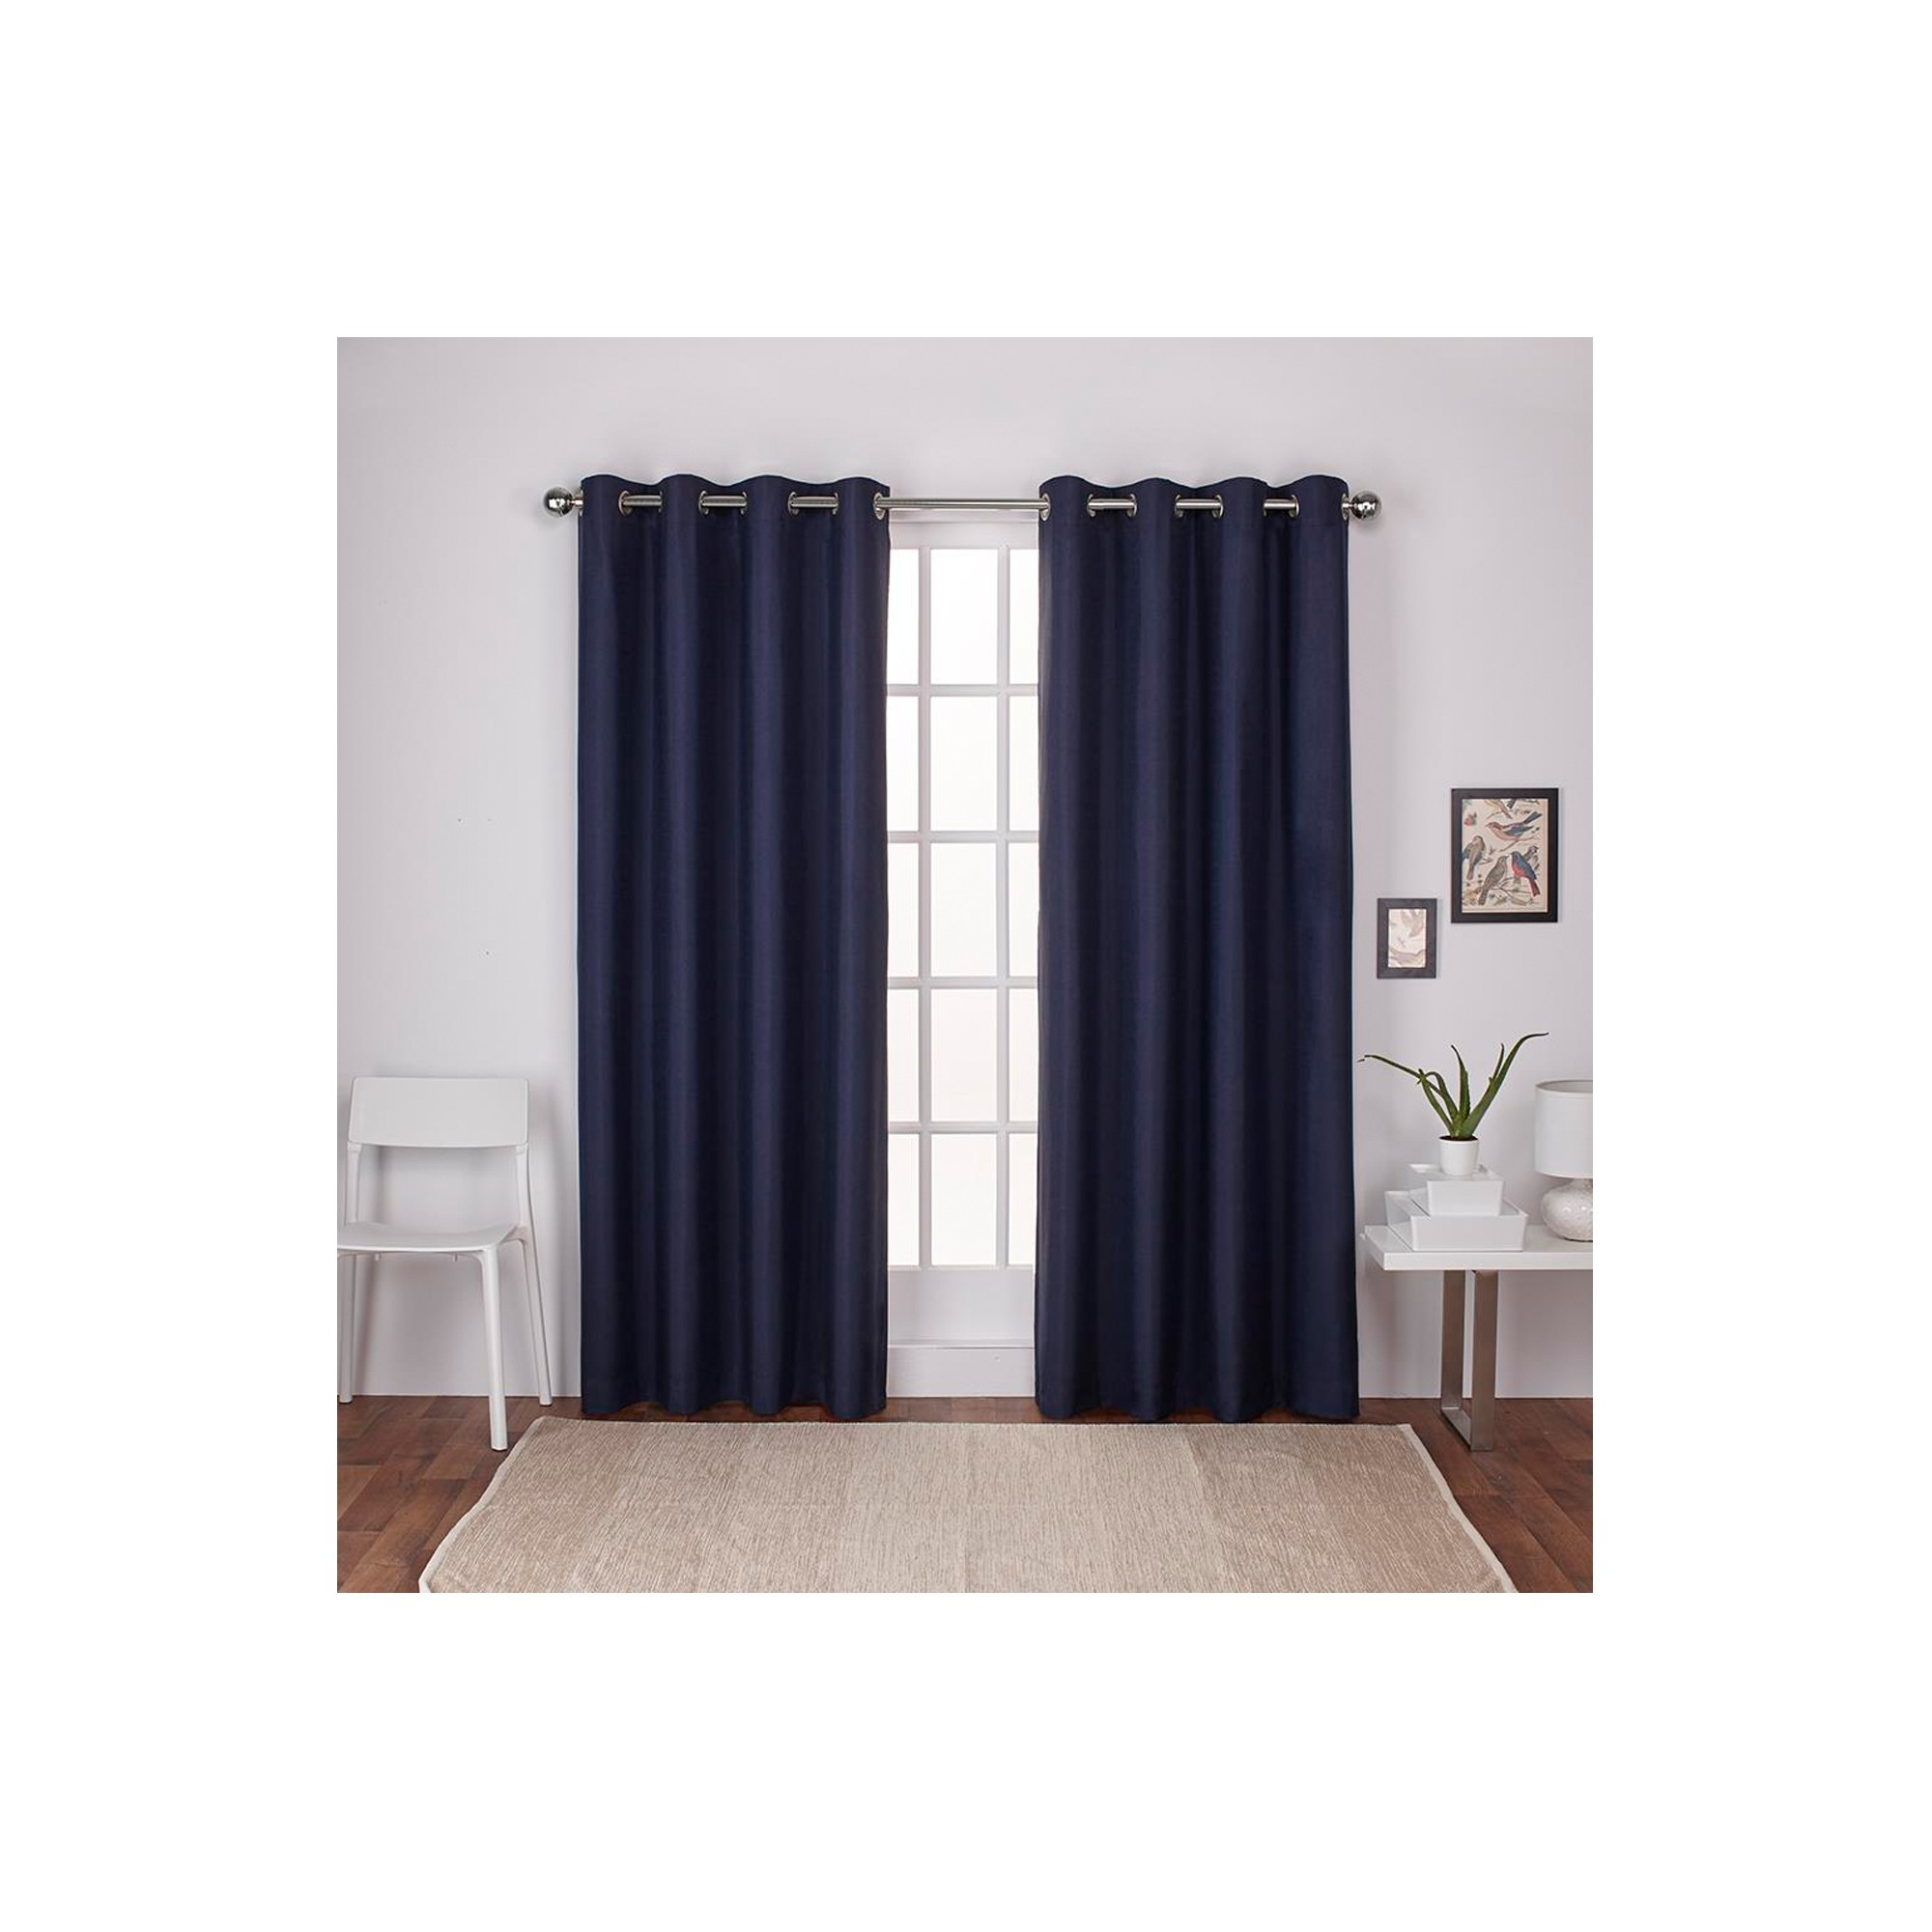 London Thermal Textured Linen Grommet Top Window Curtain Throughout Thermal Textured Linen Grommet Top Curtain Panel Pairs (View 11 of 30)